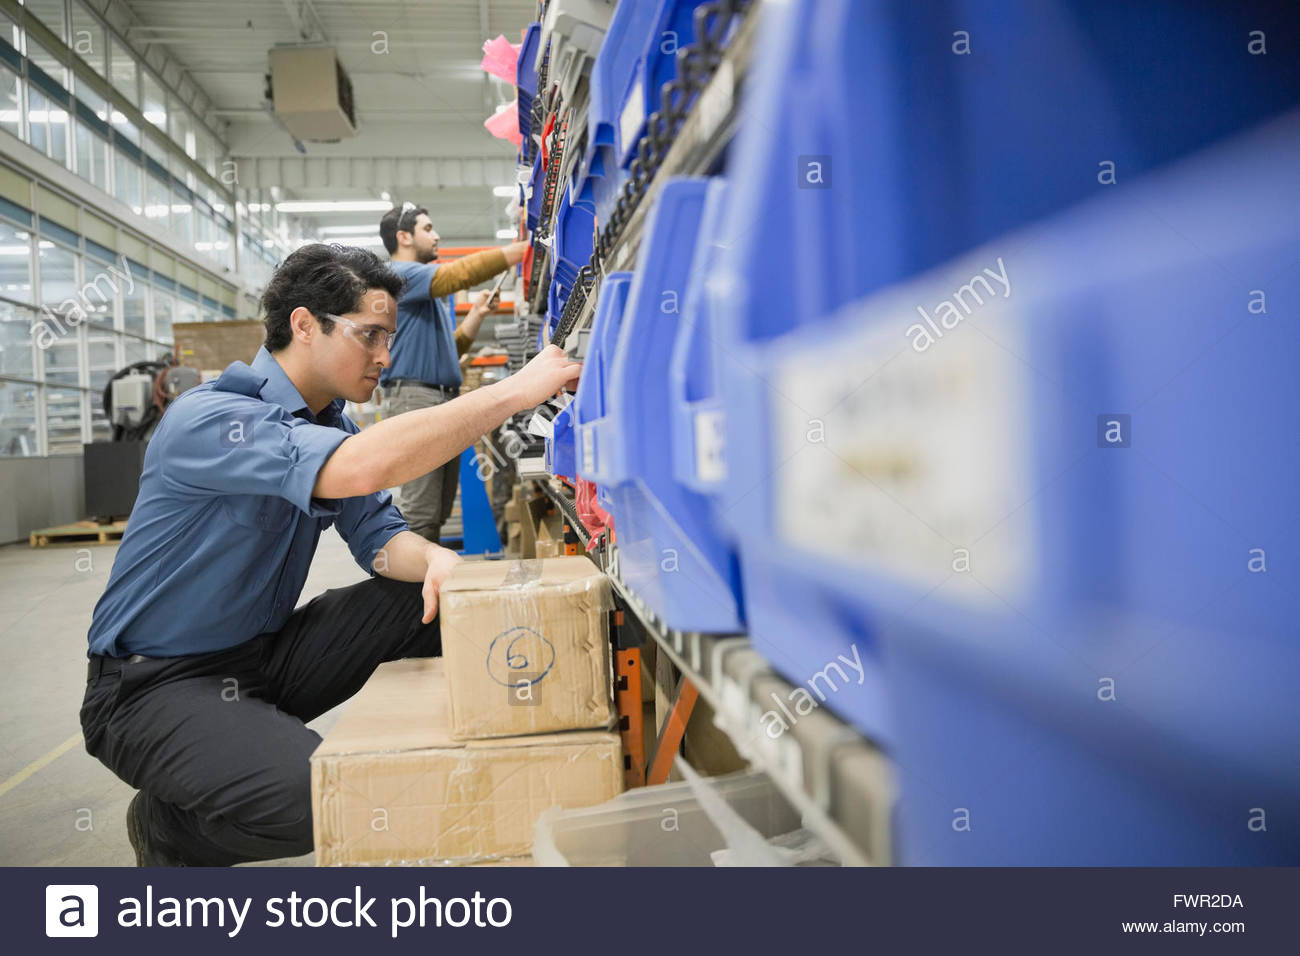 Worker picking parts in warehouse - Stock Image